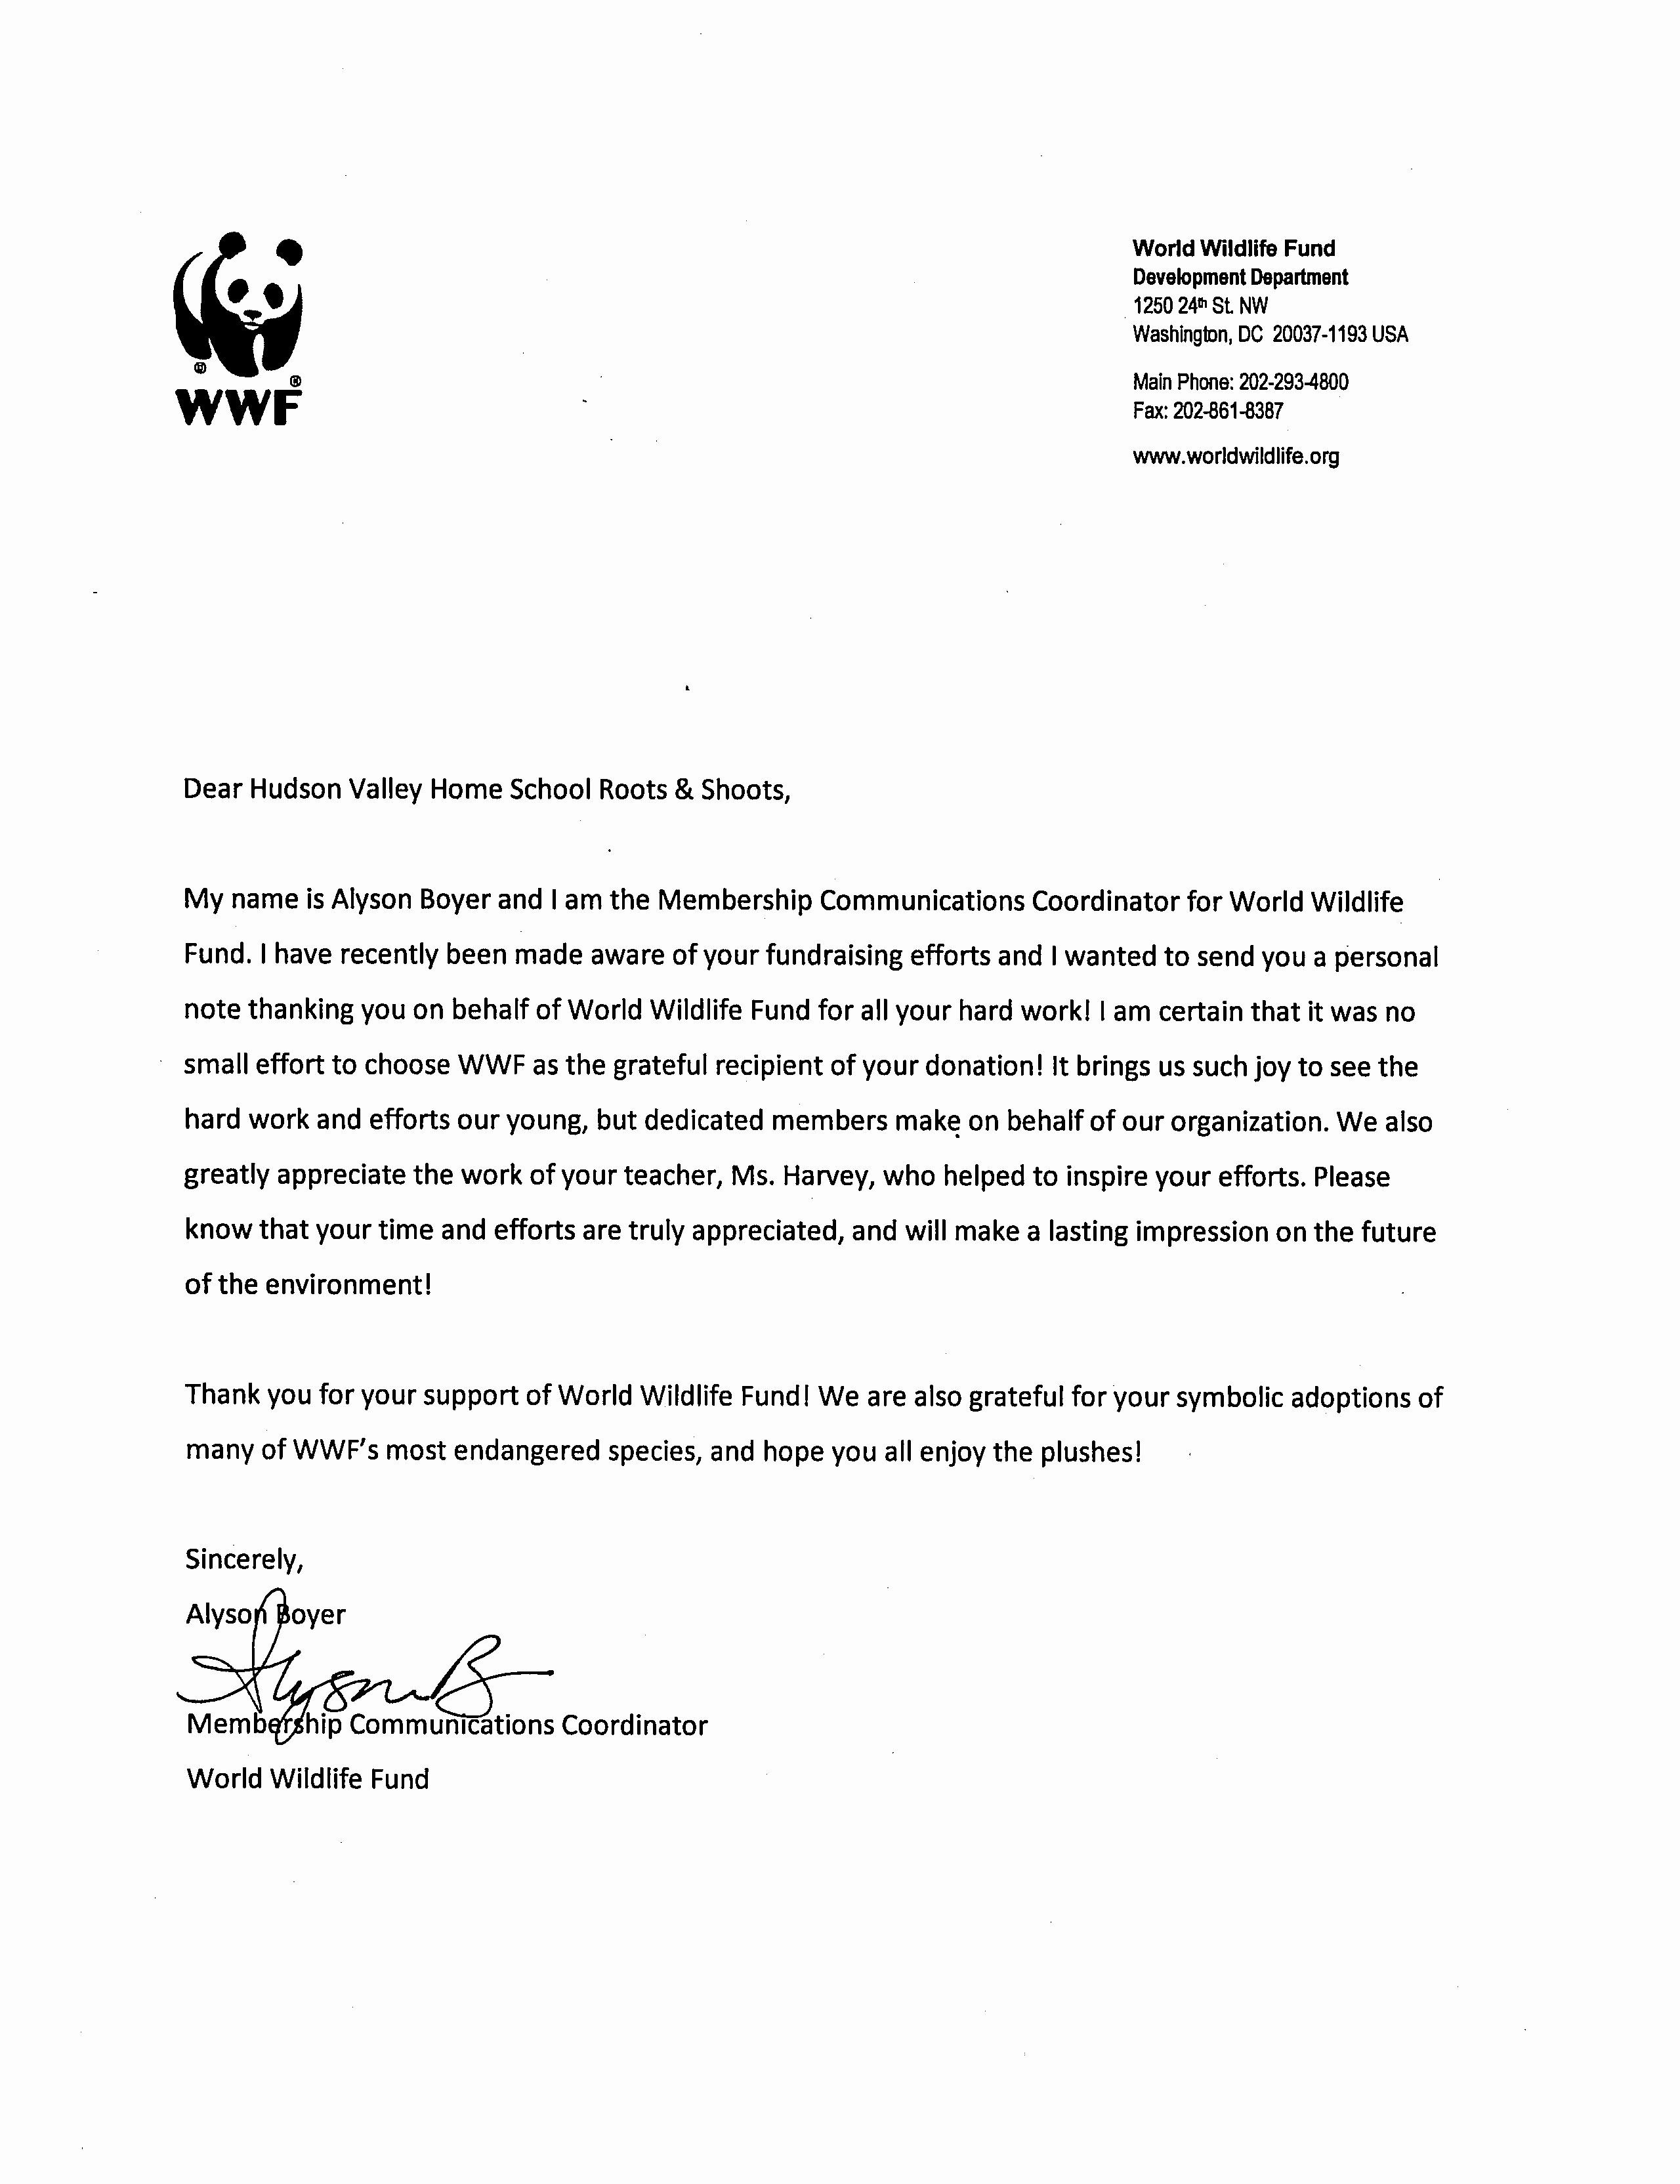 30 Community Service Recommendation Letter In 2020 Letter Of